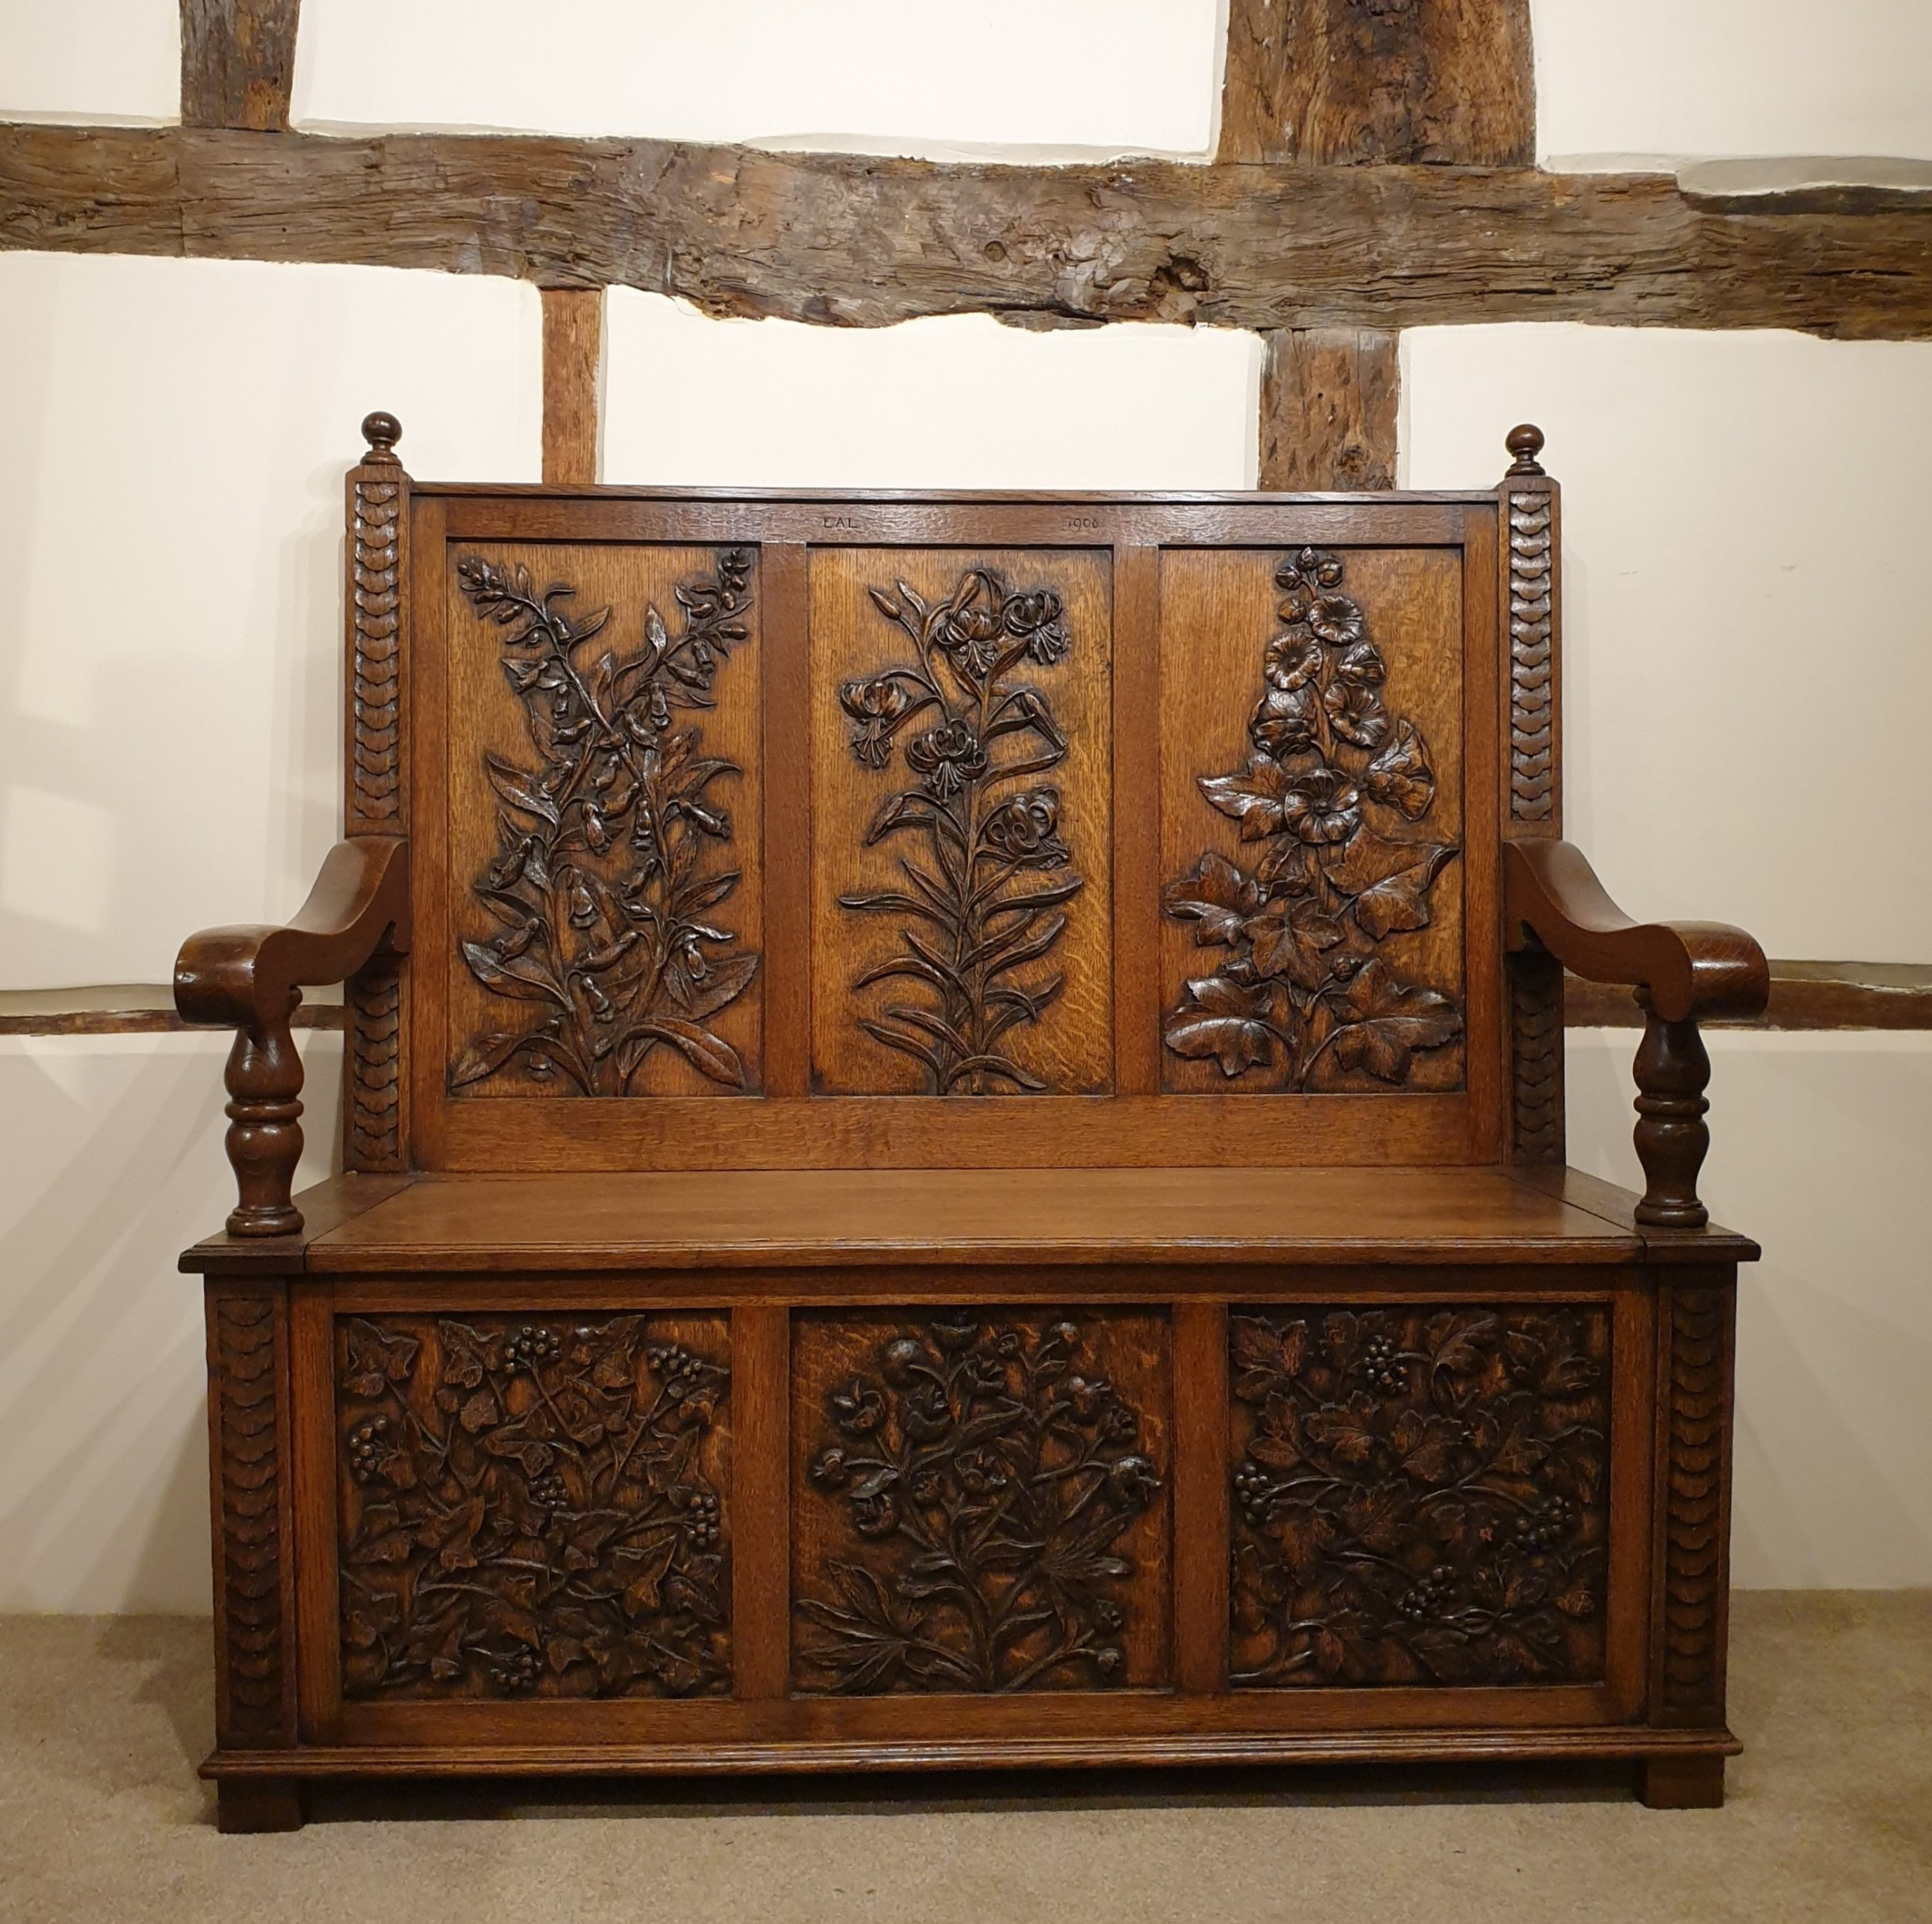 carved oak box settle uniquely decorated with garden flowers initialled dated 1908